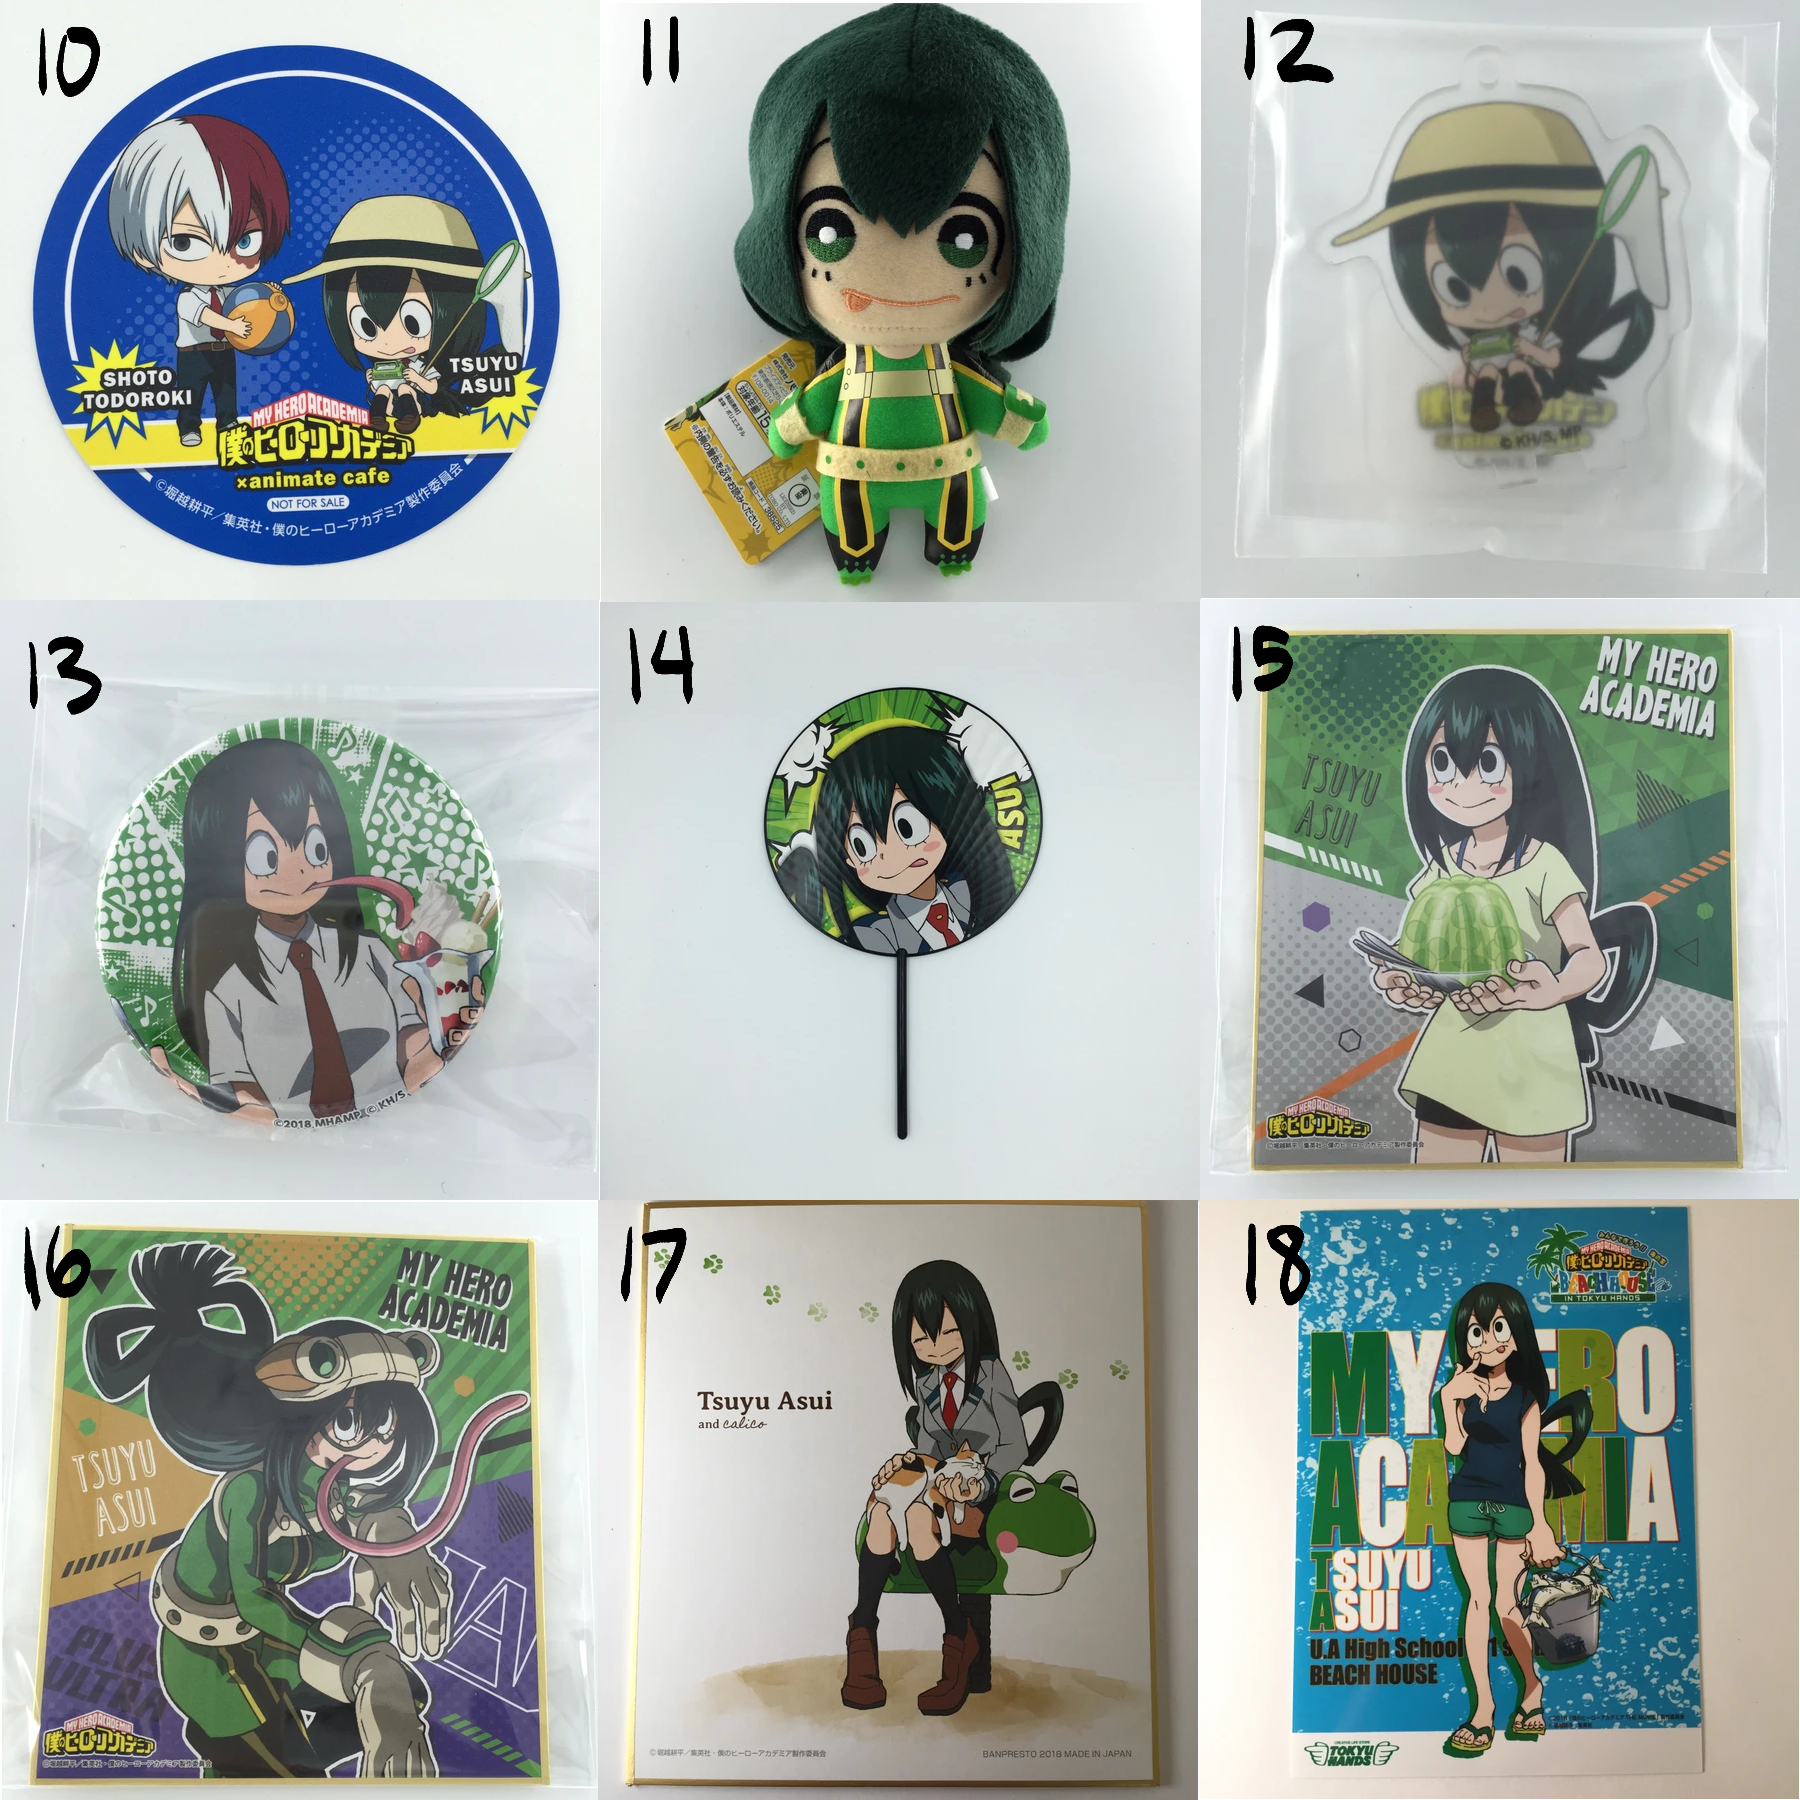 https://static.myfigurecollection.net/upload/pictures/2021/03/26/2670674.png